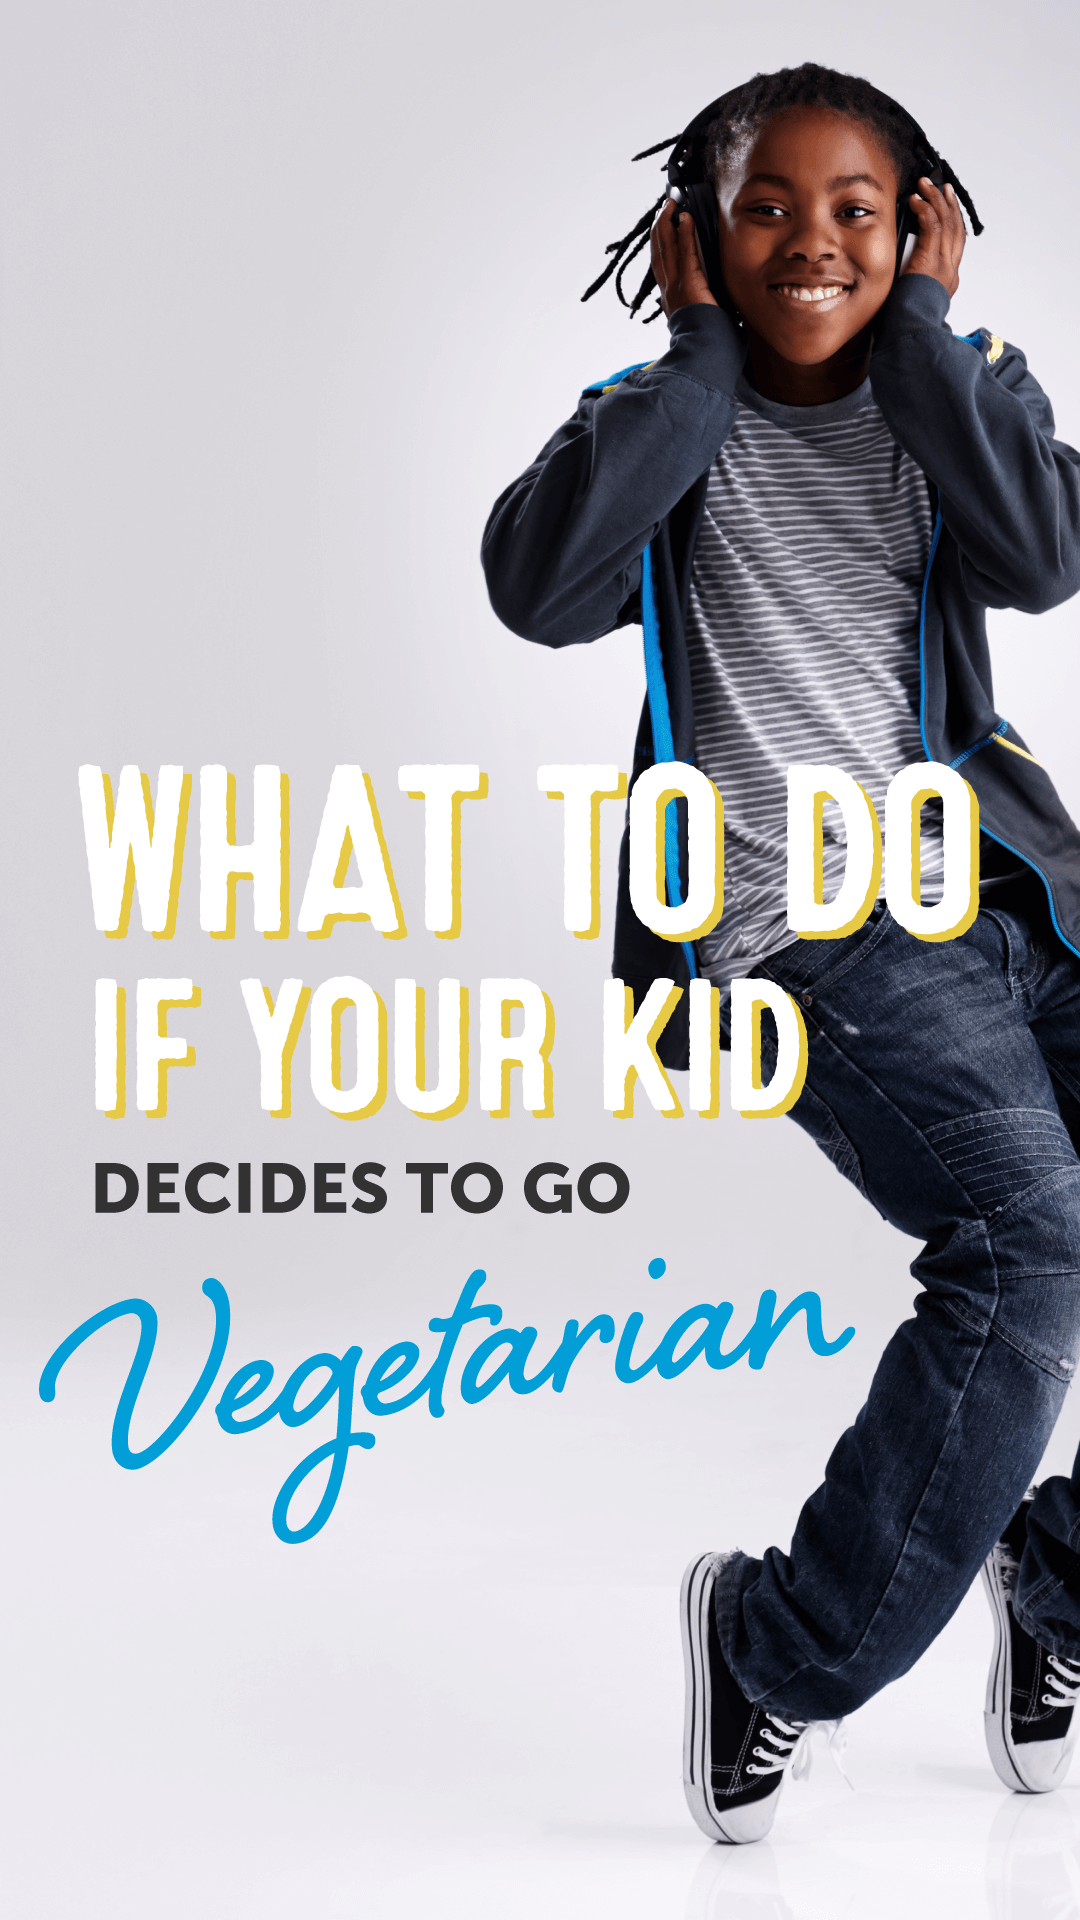 What to Do If Your Kid Decides to Go Vegetarian